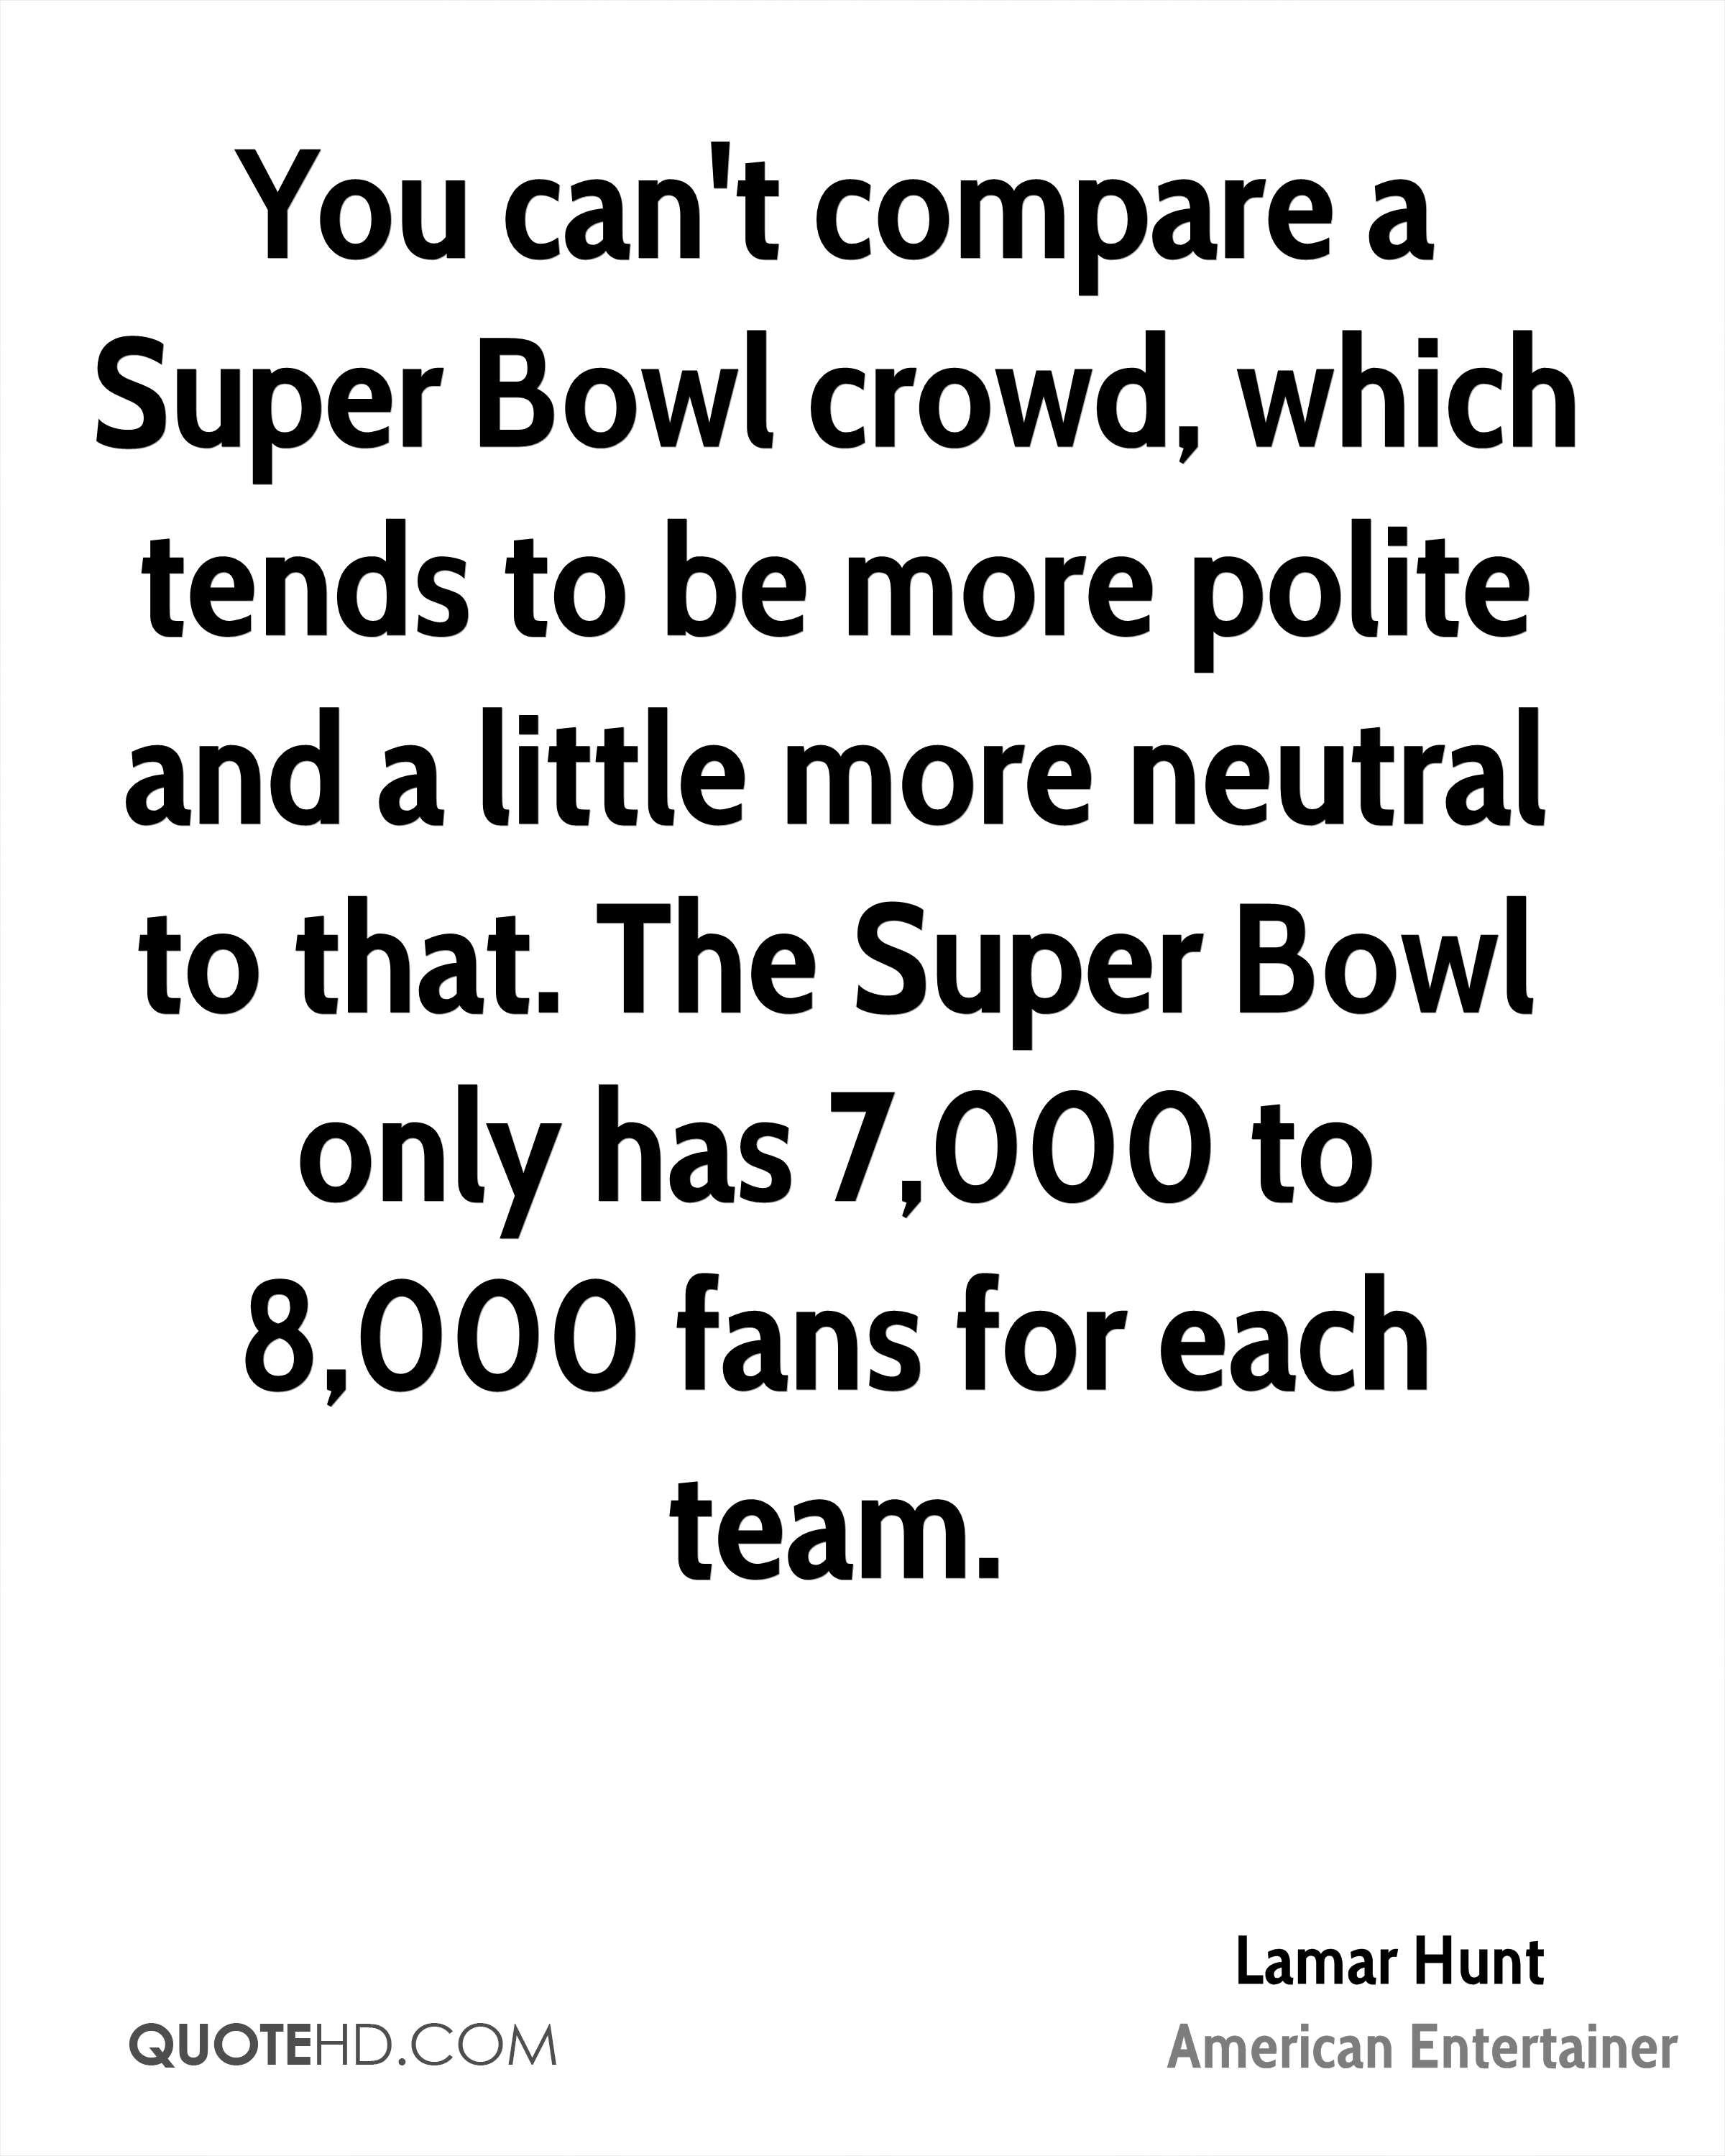 You can't compare a Super Bowl crowd, which tends to be more polite and a little more neutral to that. The Super Bowl only has 7,000 to 8,000 fans for each team.